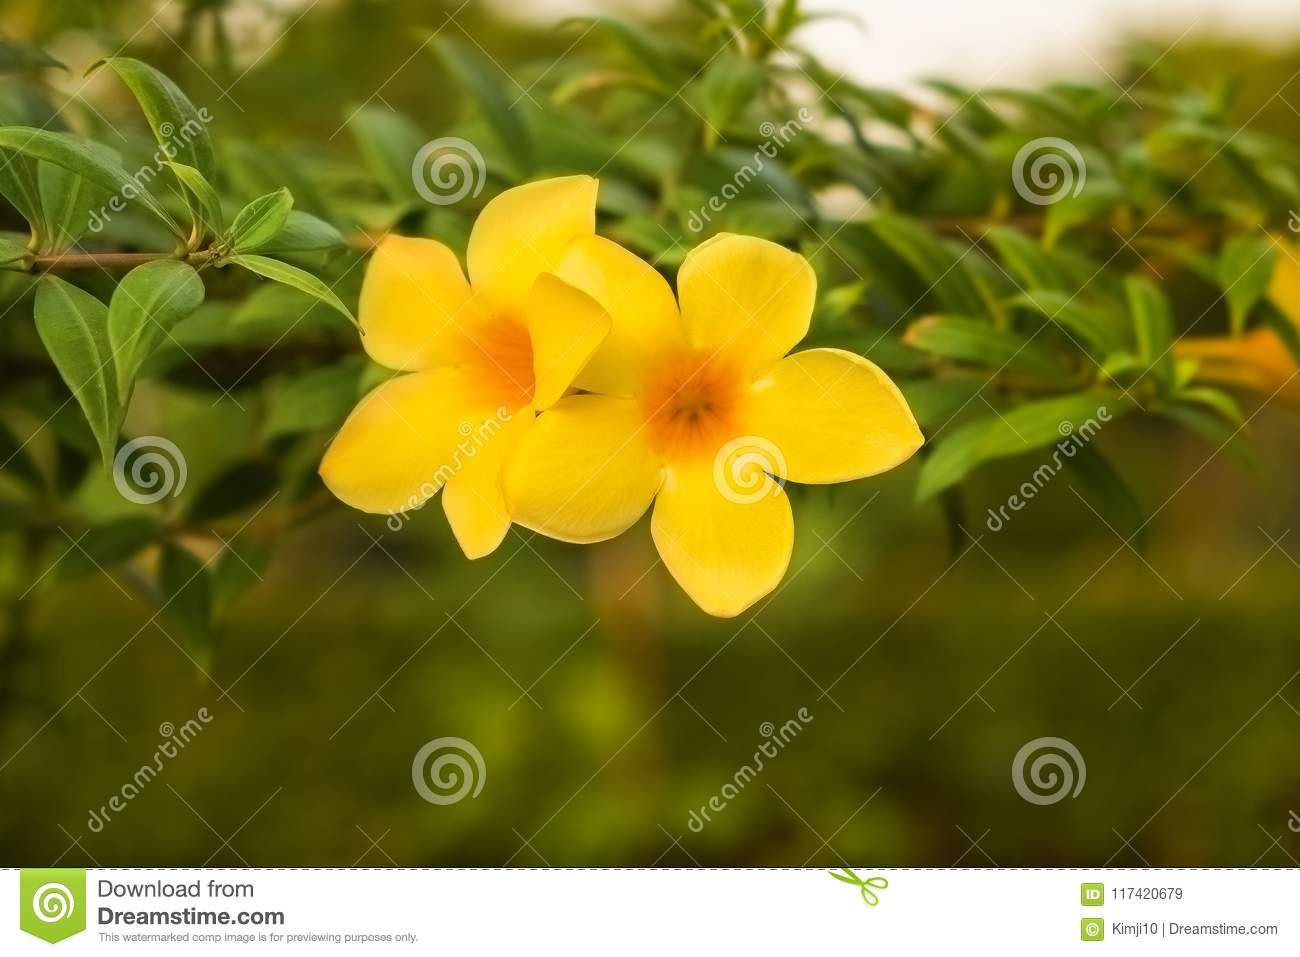 Mandevilla Flower Yellow Stock Image Image Of Organic 117420679